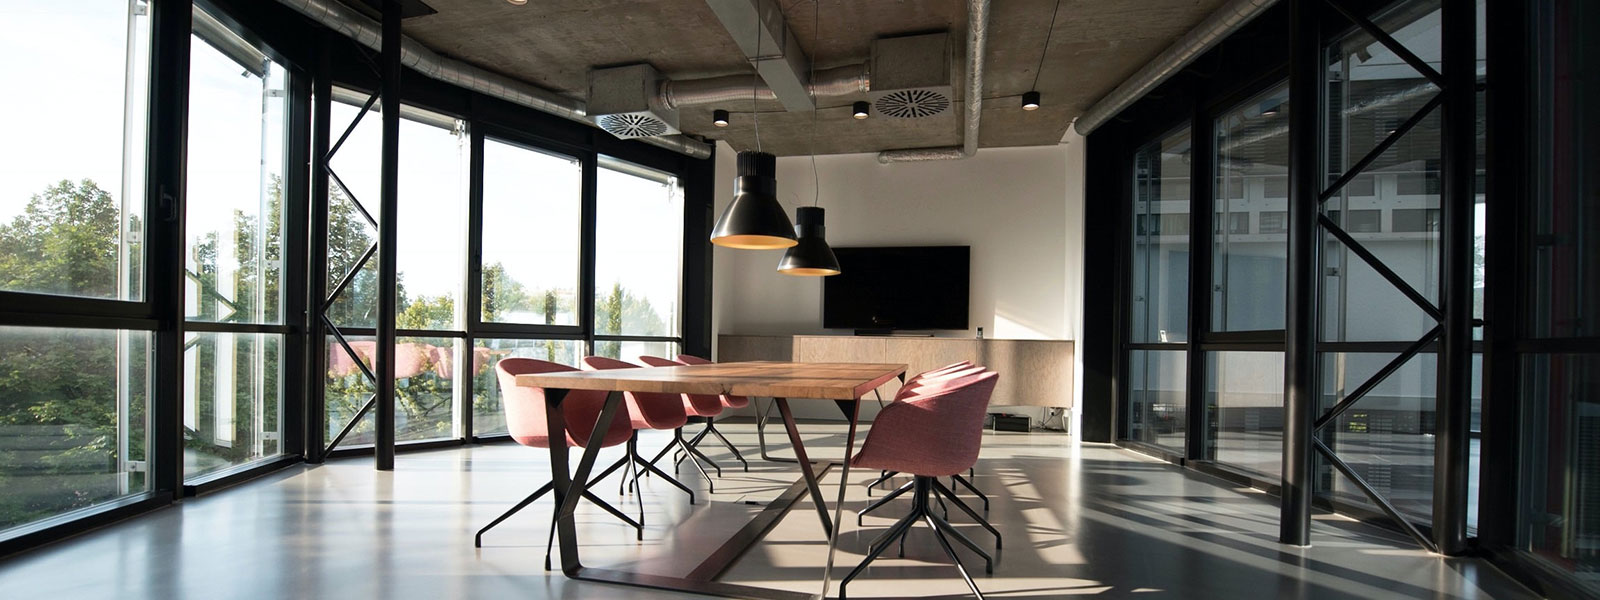 Oficinas inteligentes y co-working spaces.